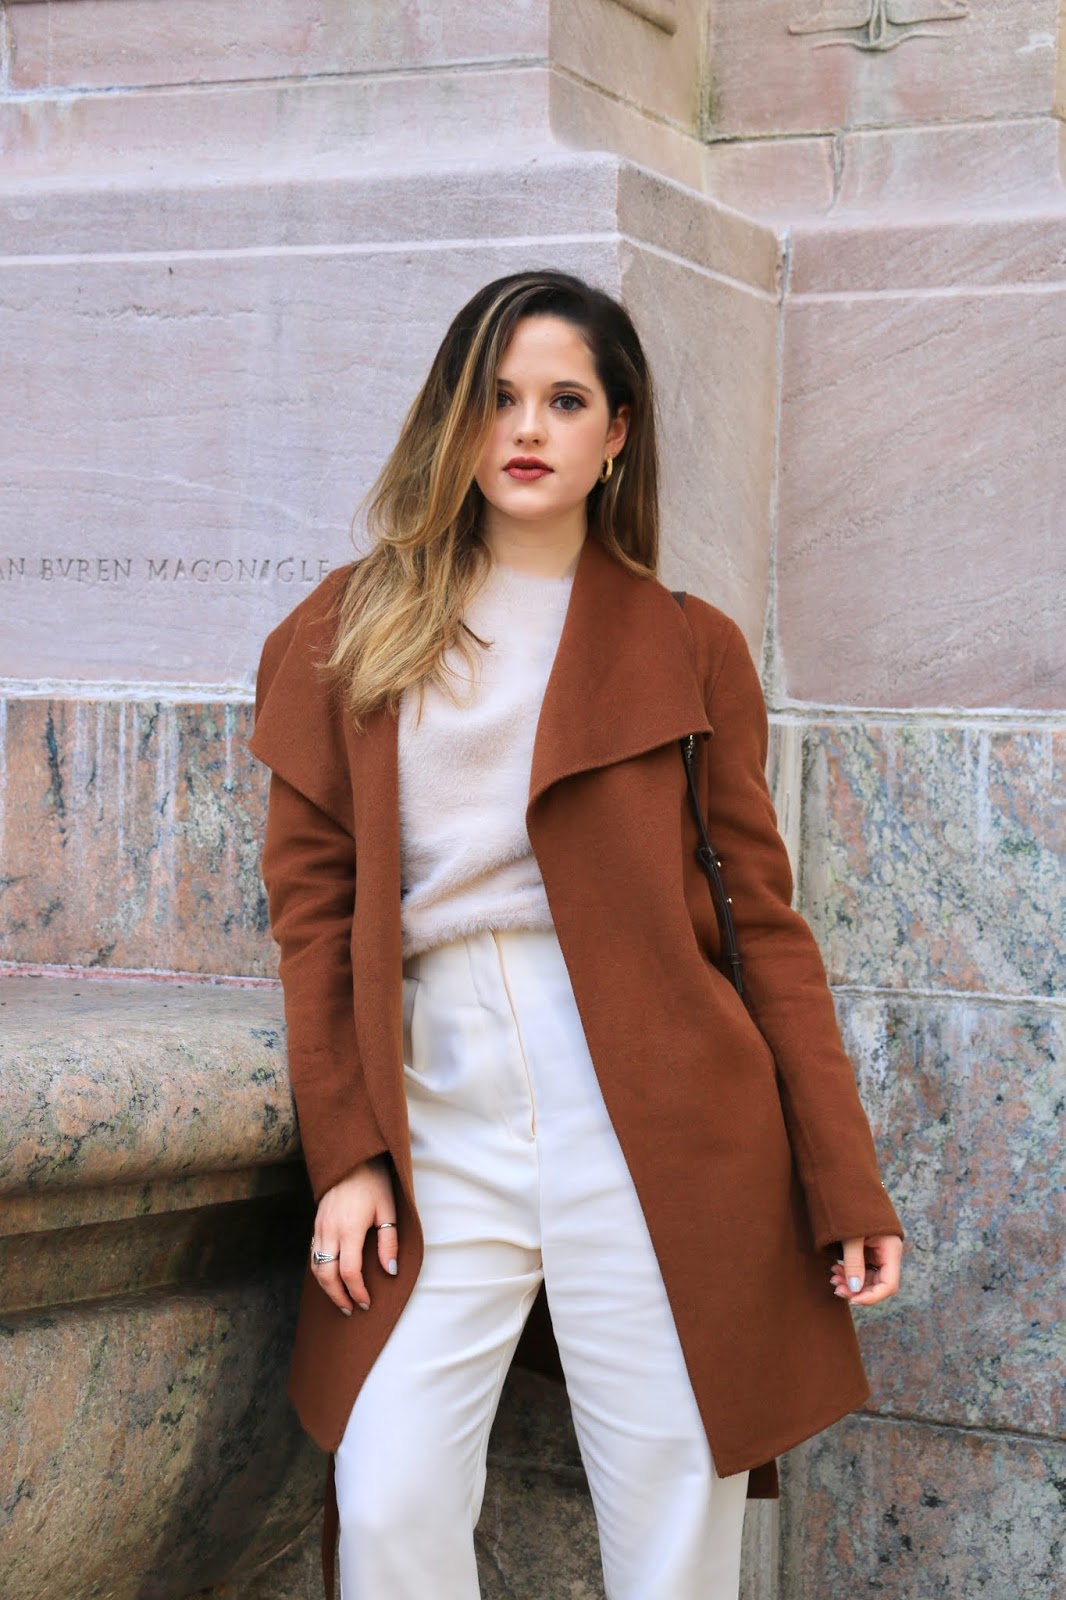 Nyc fashion influencer Kathleen Harper's easy fall outfit idea.